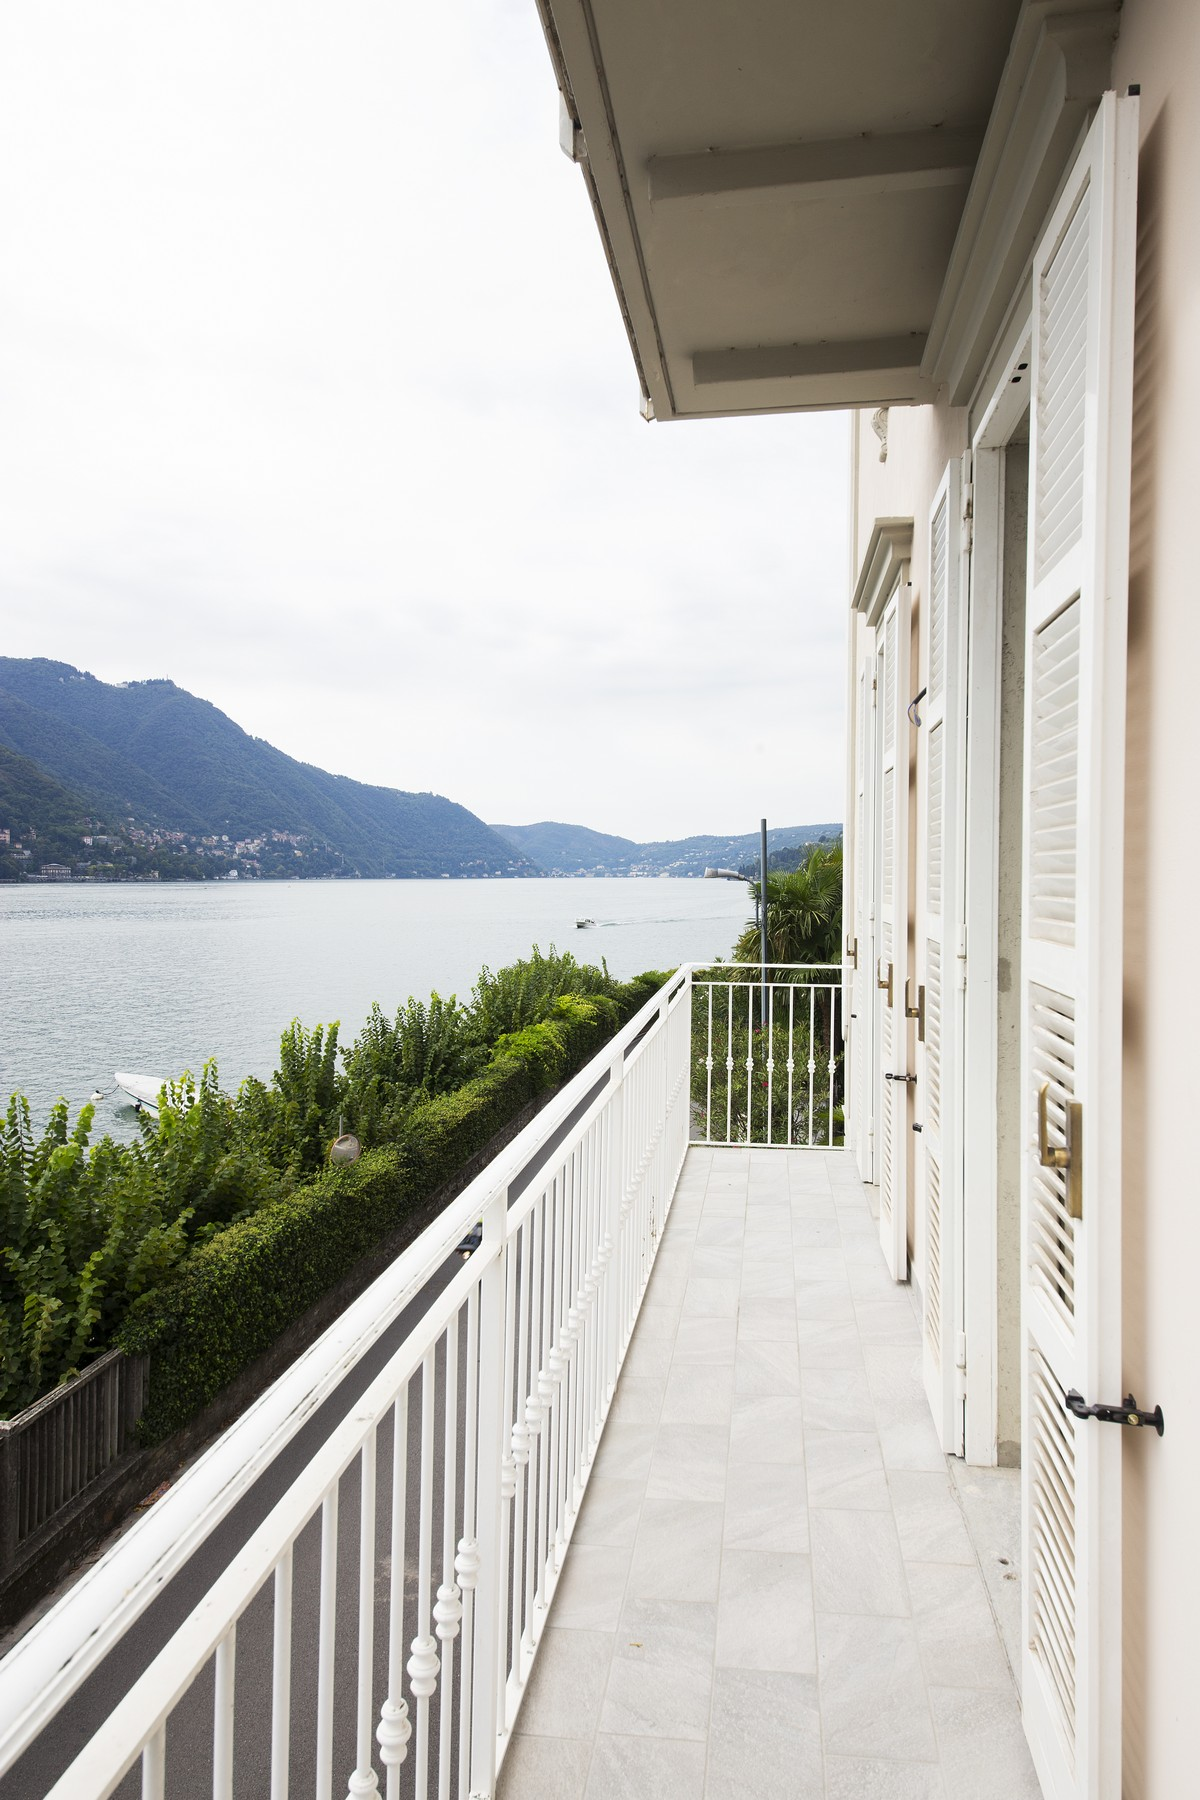 Additional photo for property listing at Fantastic villa liberty pieds dans l'eau on Lake Como Via Regina Vecchia Carate Urio, Como 22010 Italia